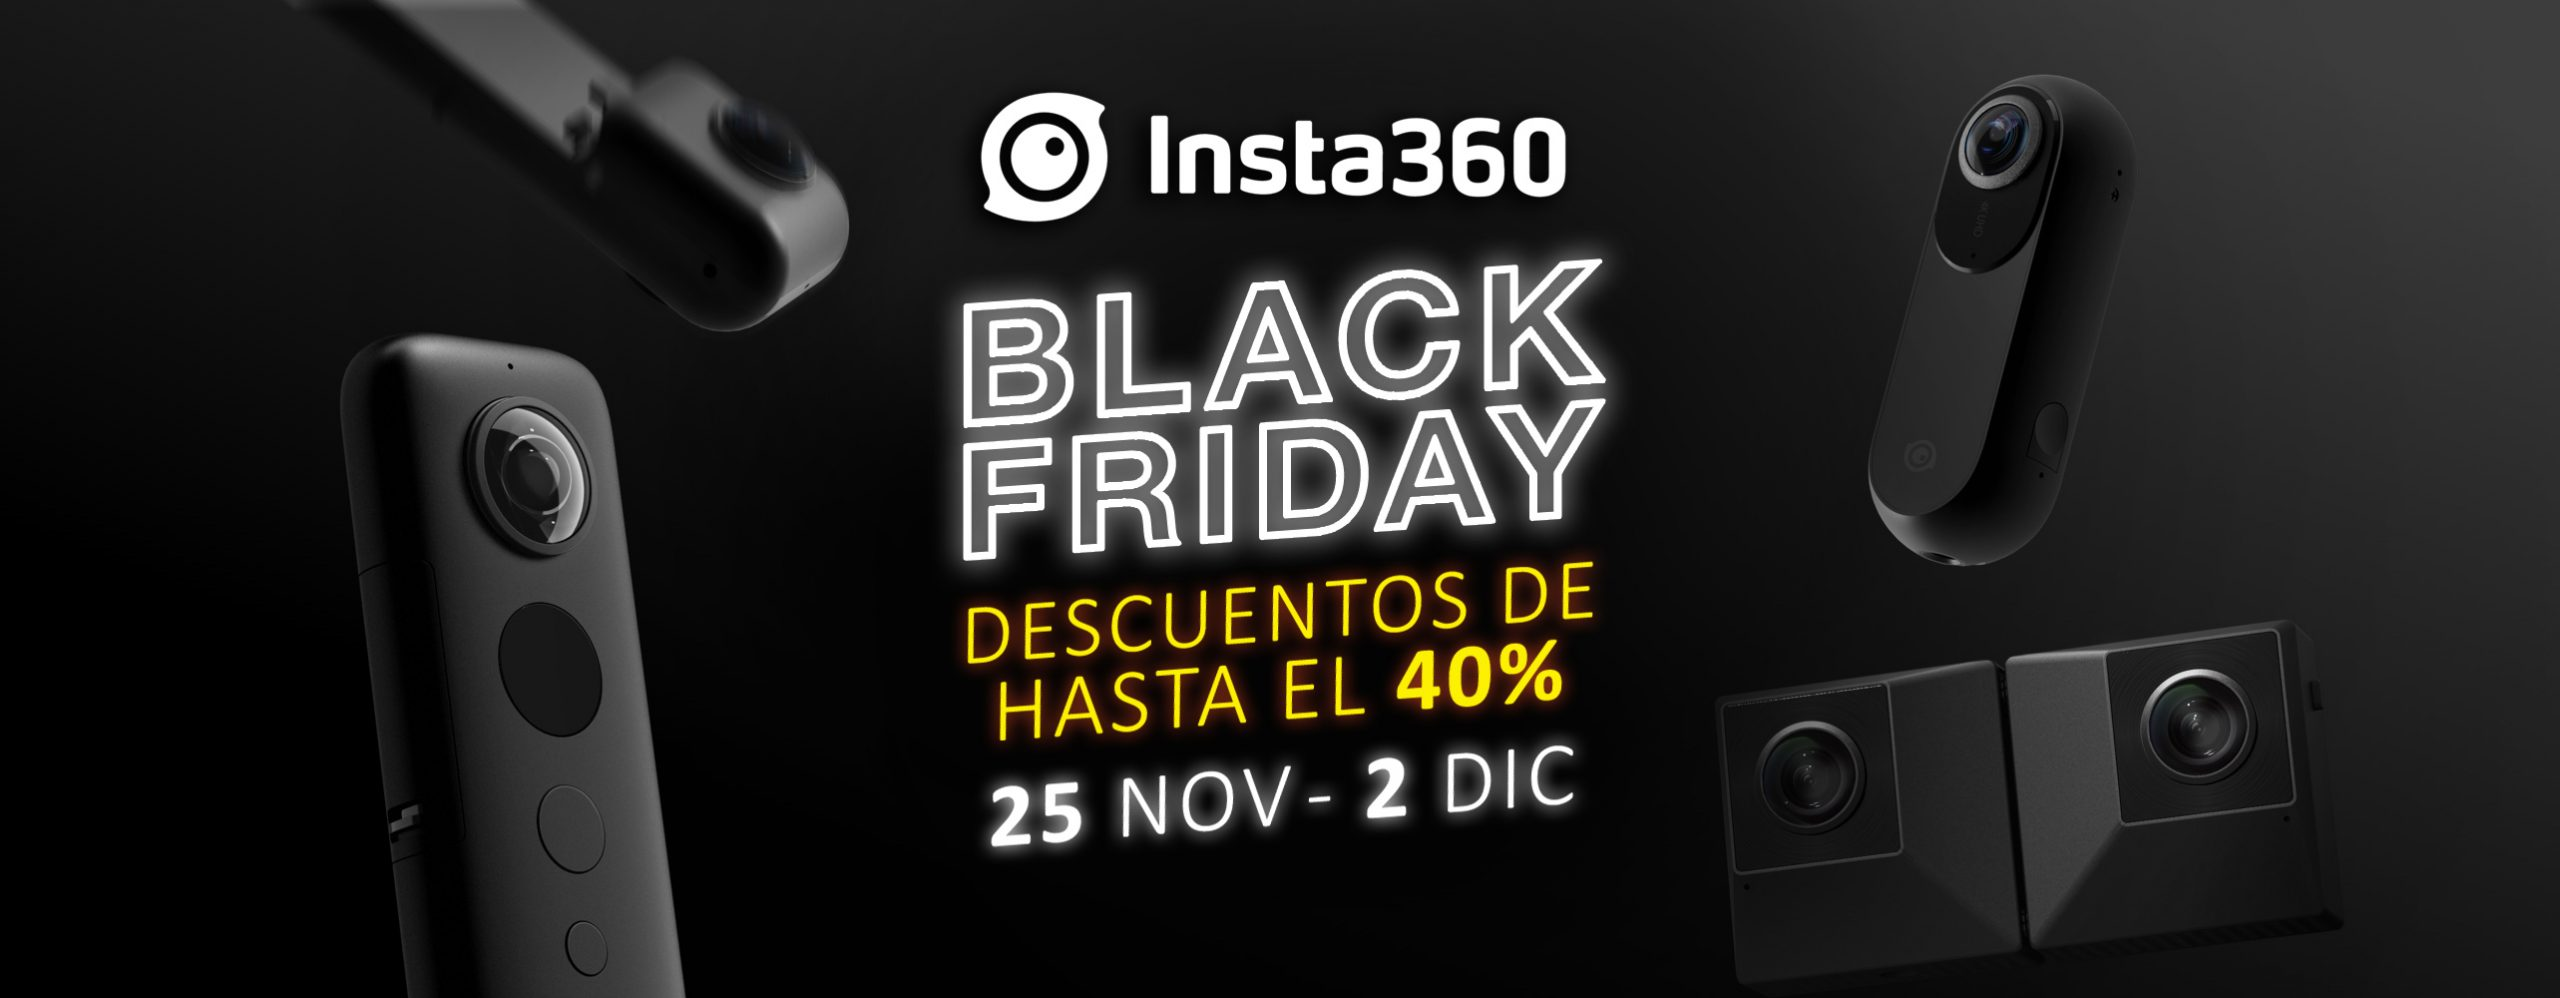 Insta360 Black Friday